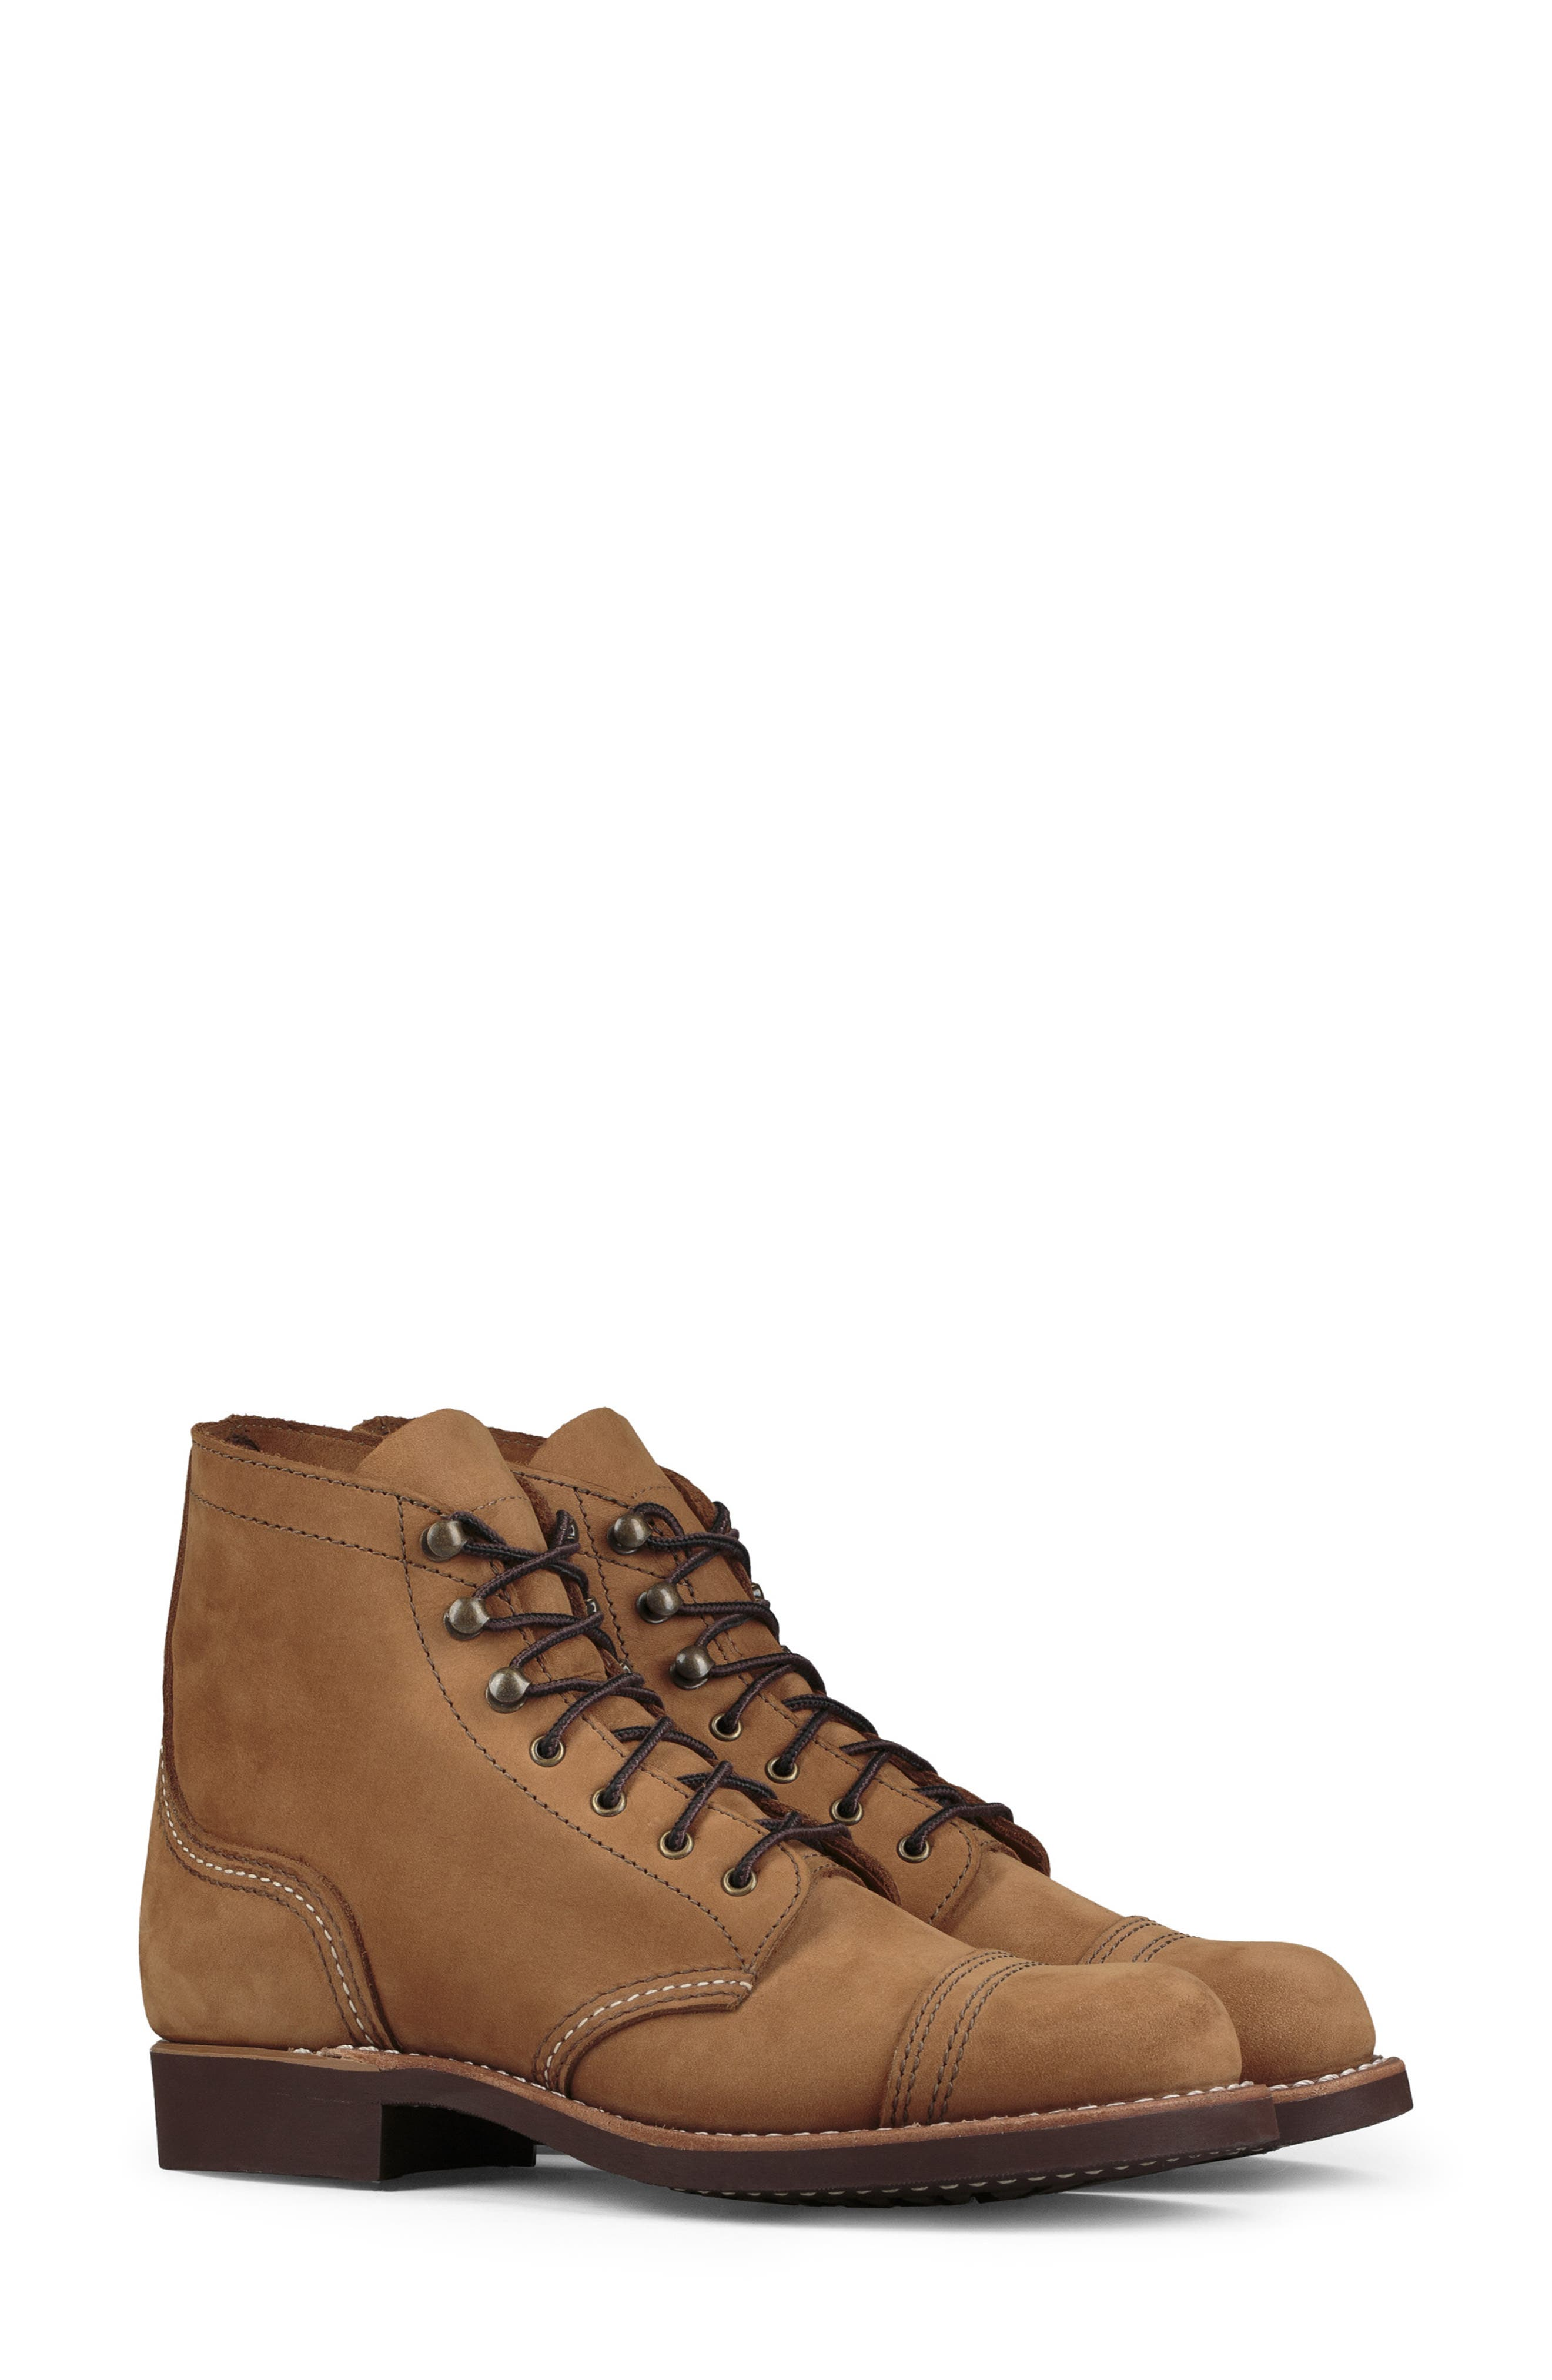 RED WING Iron Ranger Boot in Honey Chinook Leather